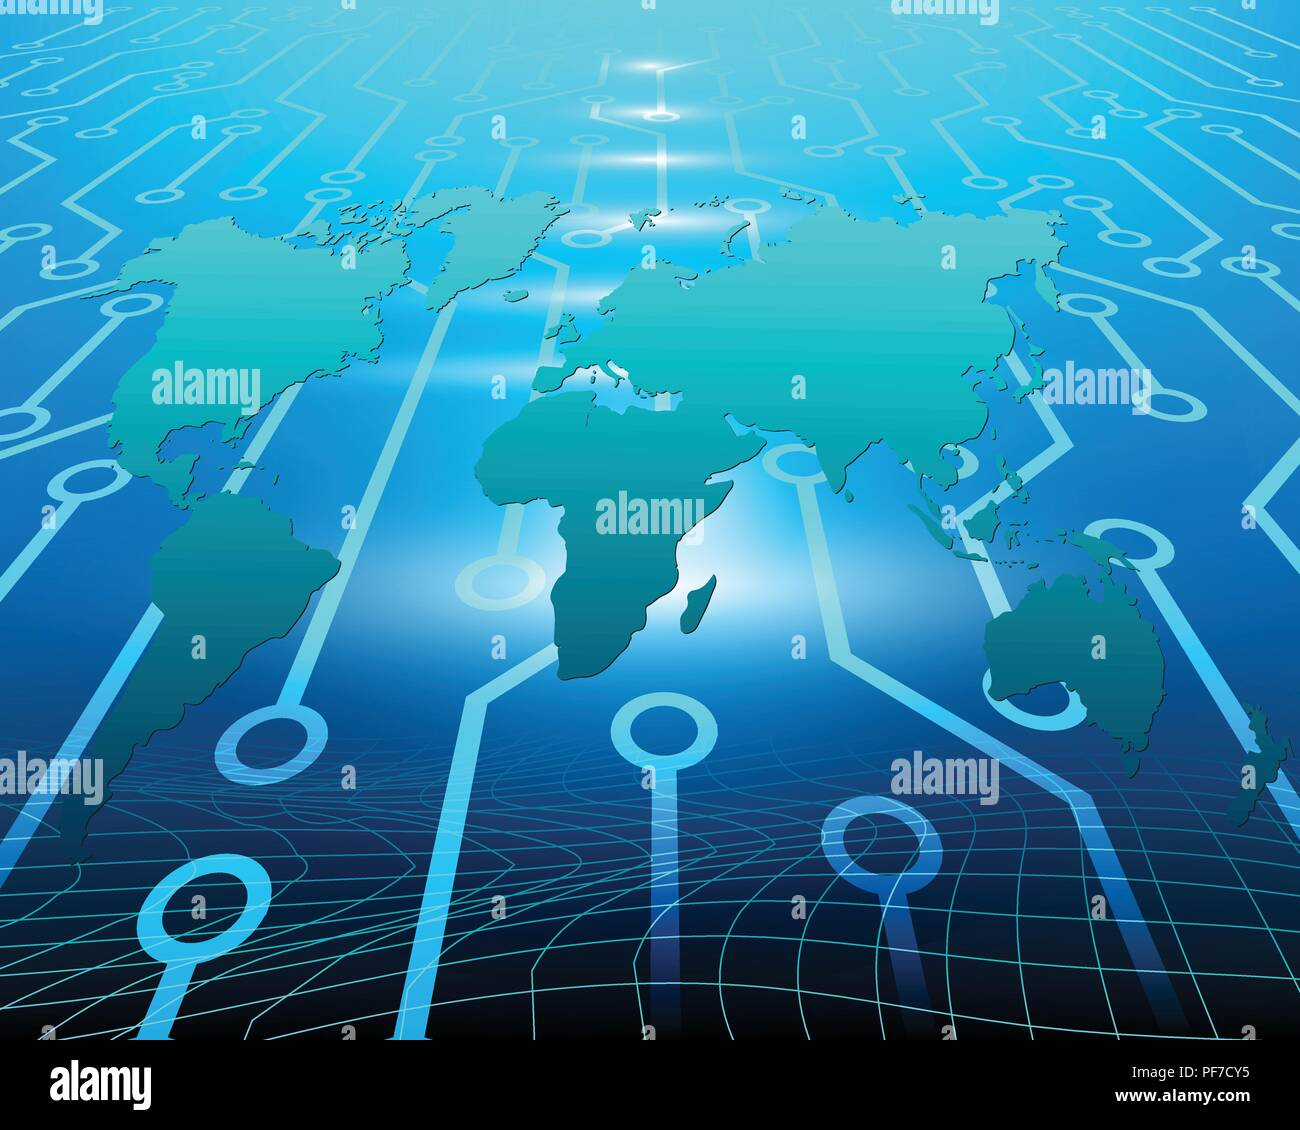 Process Map Stock Photos Images Alamy Circuit Symbols Class Ideas 8th Grade Mindmap Galaxy World Cyber Wireless Internet Network Connection Business Zone Online With Symbolsvector Illustration